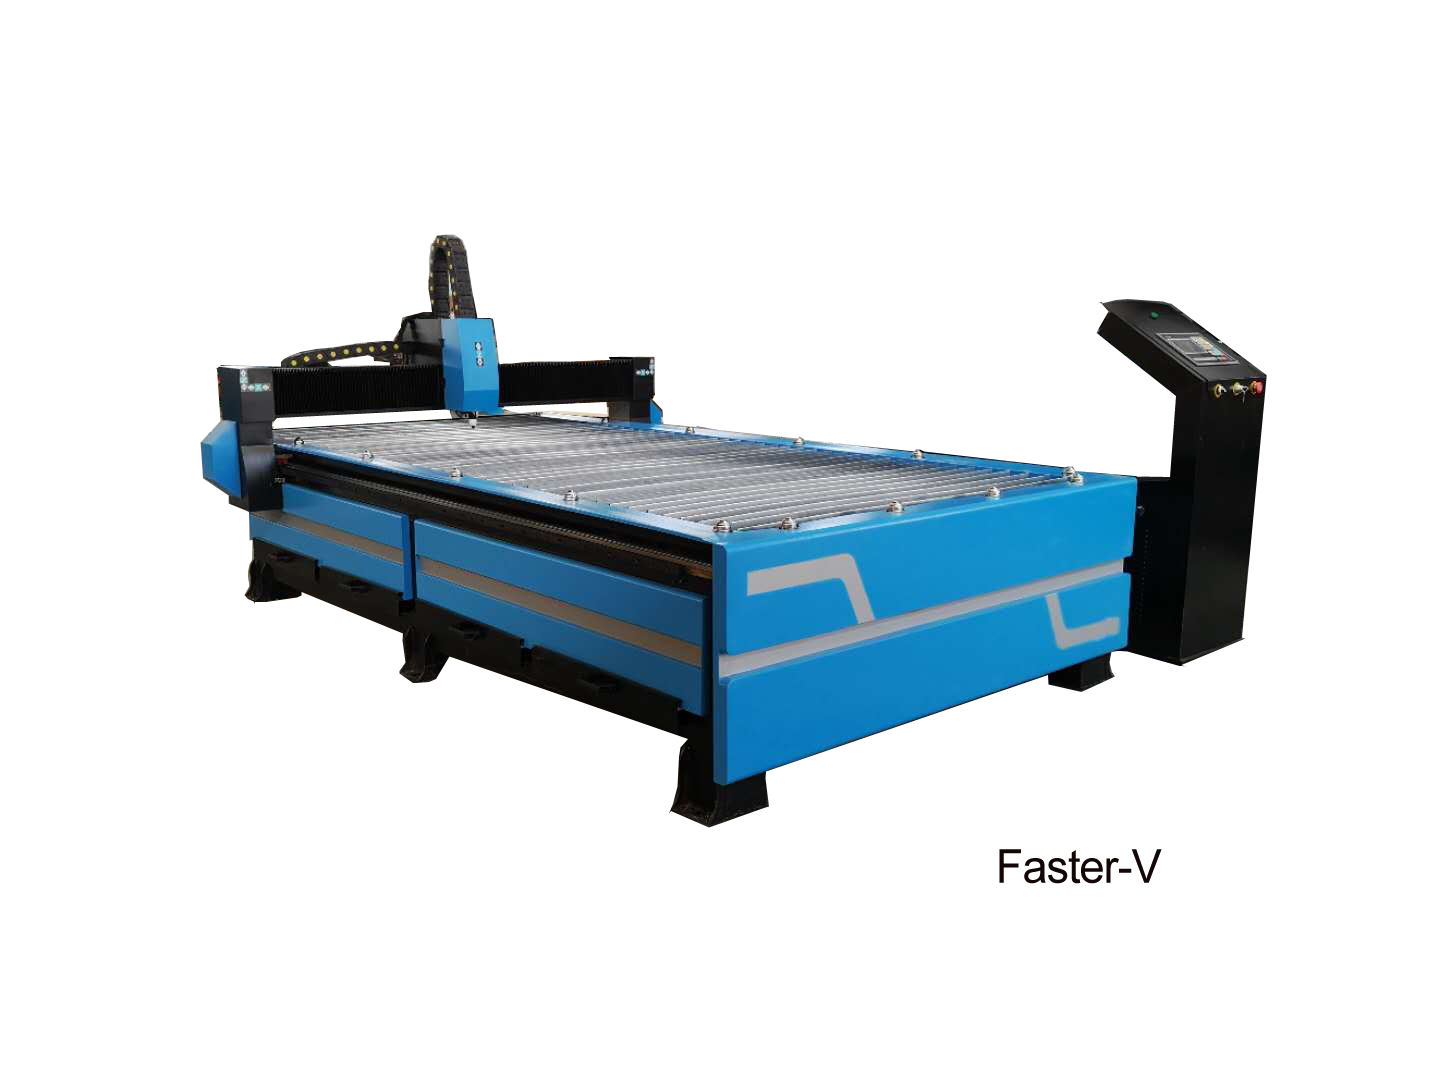 title='IDIKAR Faster-V Serise CNC Table Cutting machine'